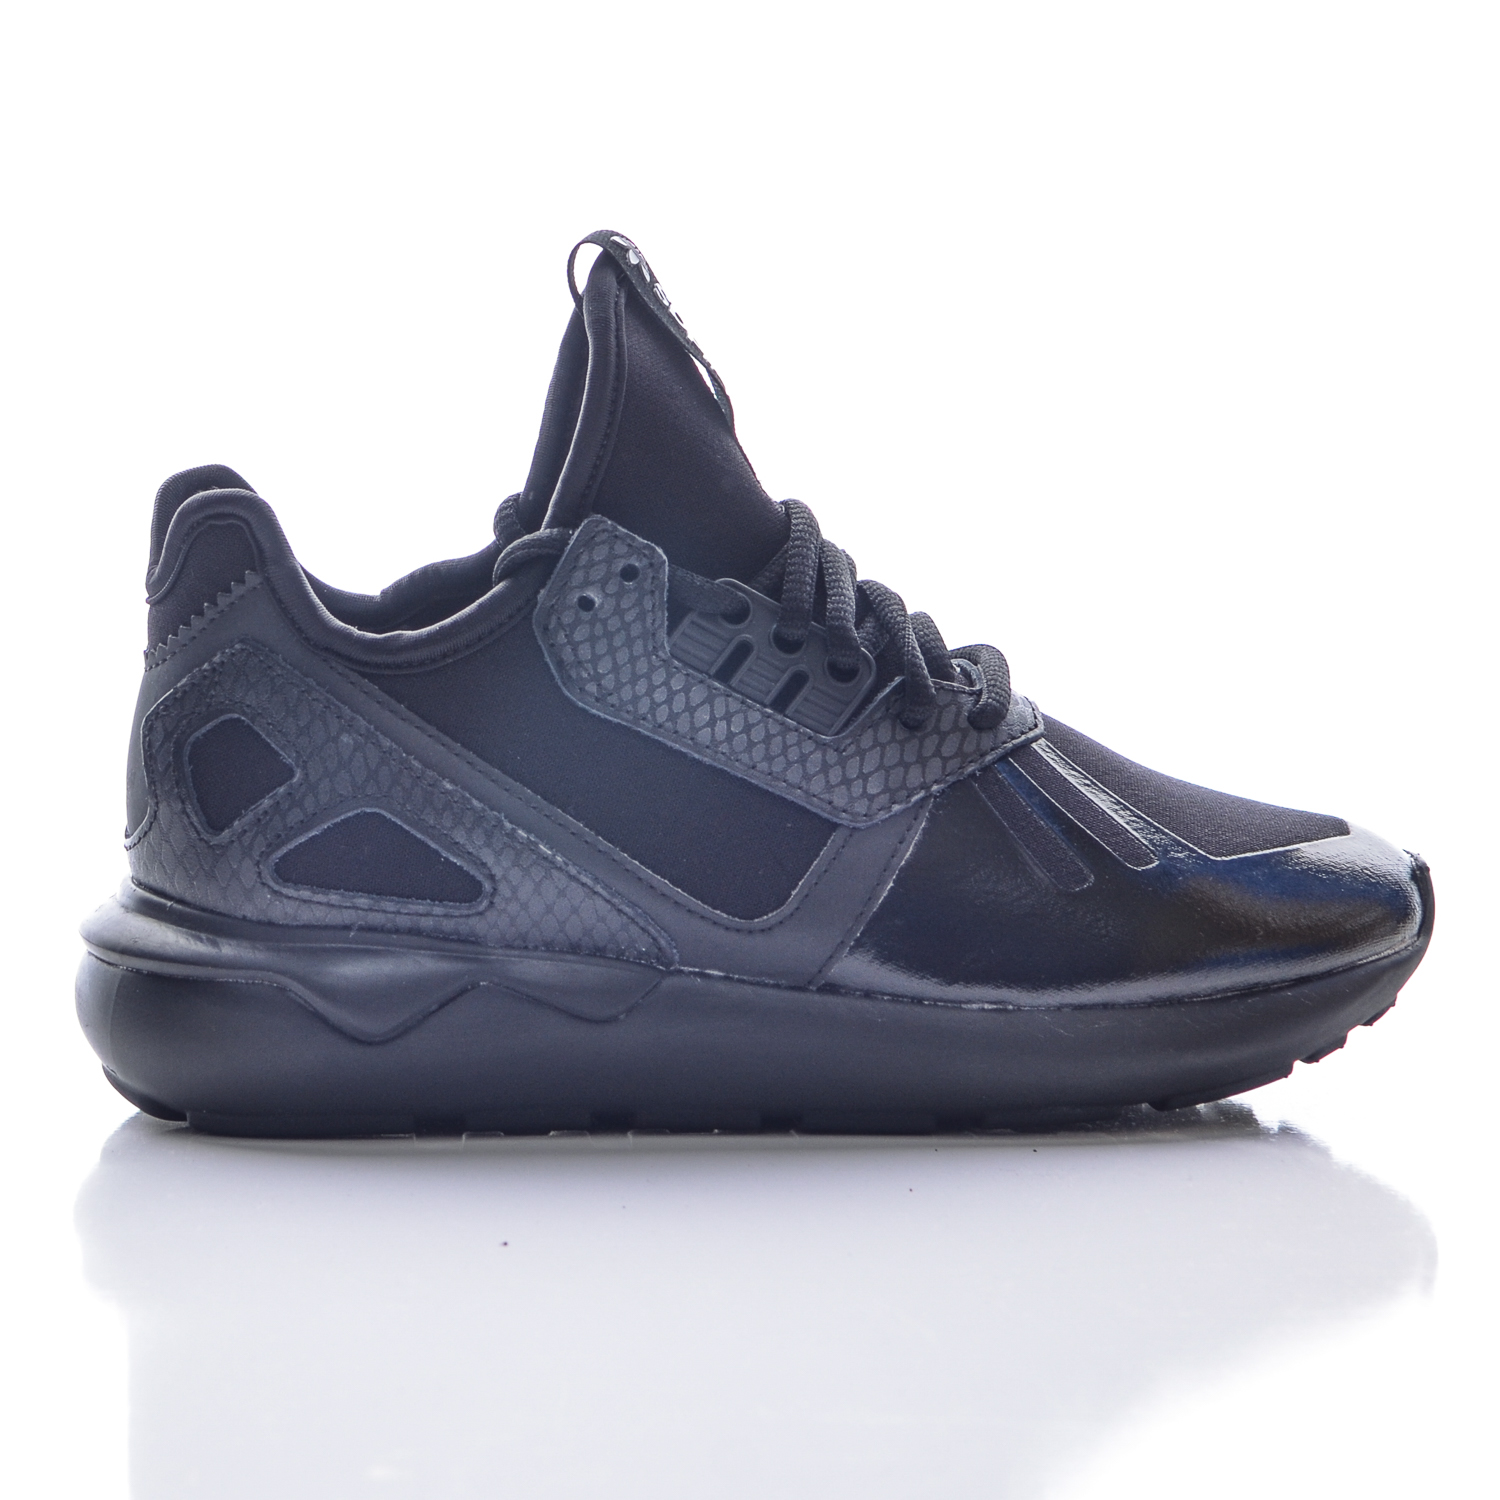 Tenisky Adidas Originals Tubular Runner Black 36 2/3